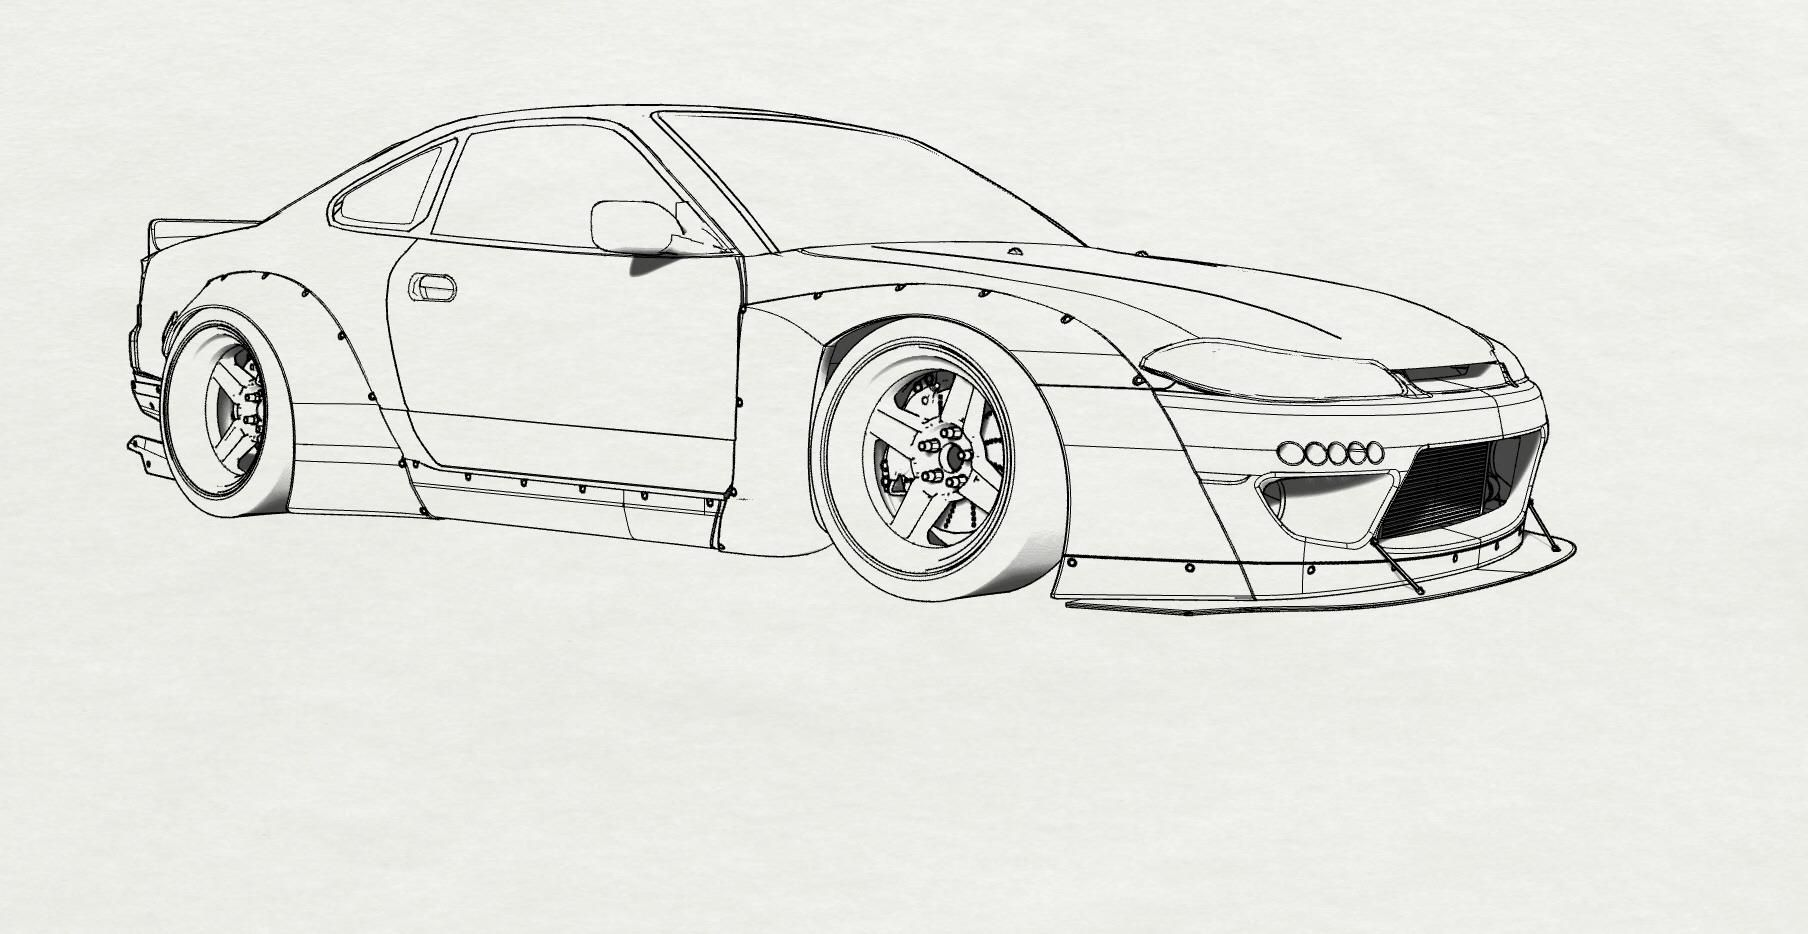 Nissan 240sx S13 Coupe